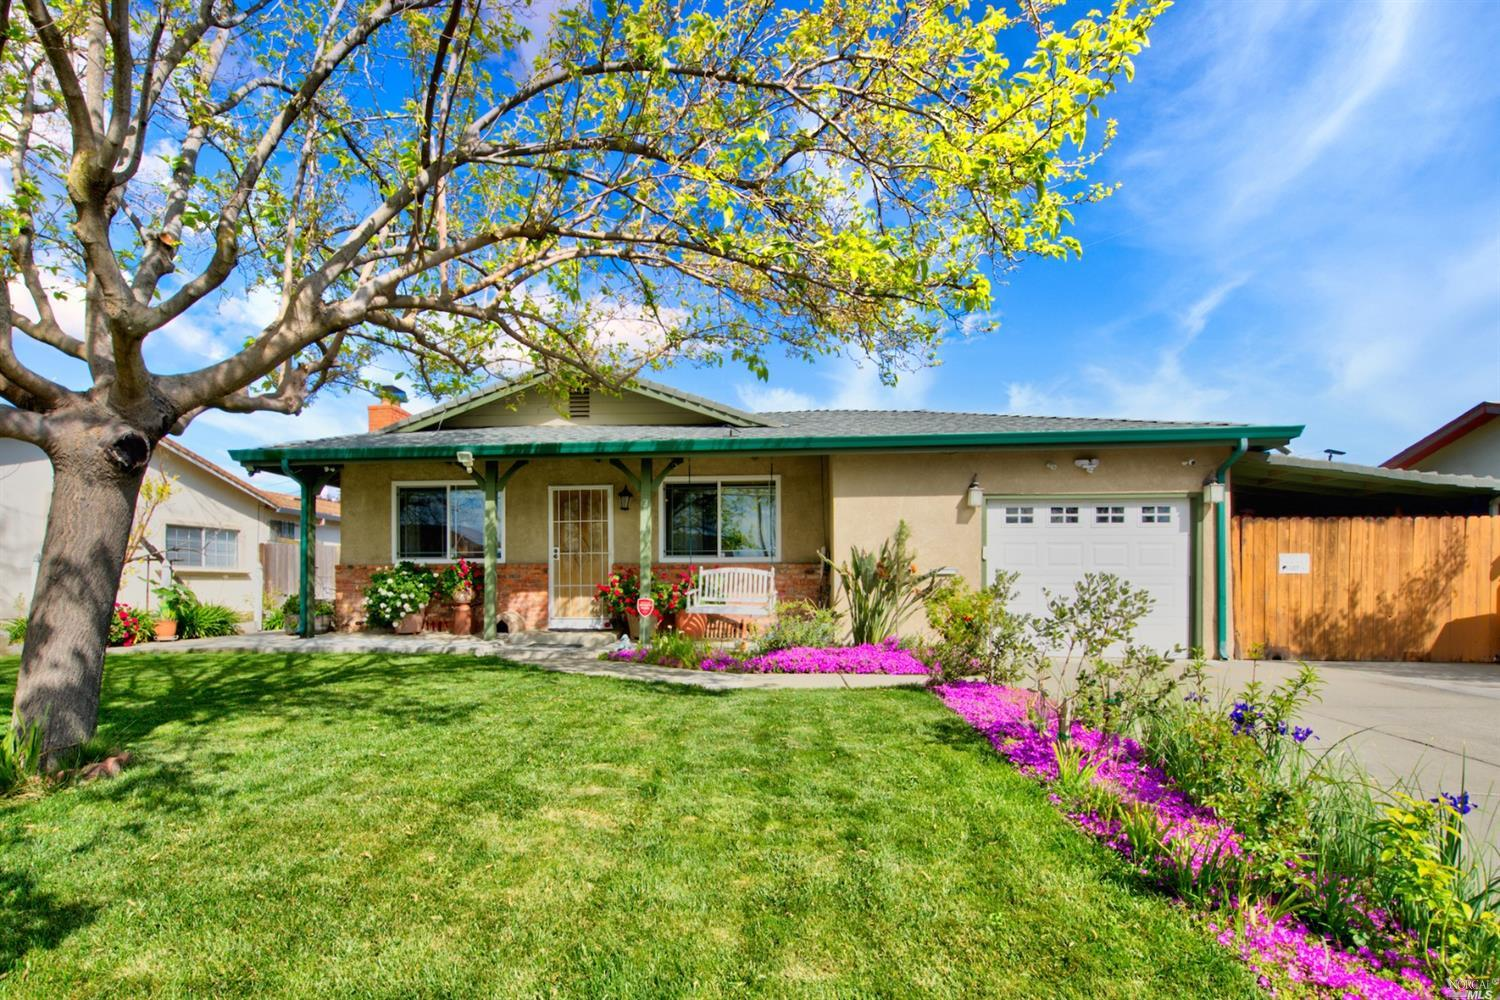 Photo of 224 Stephen Street, Fairfield, CA 94533